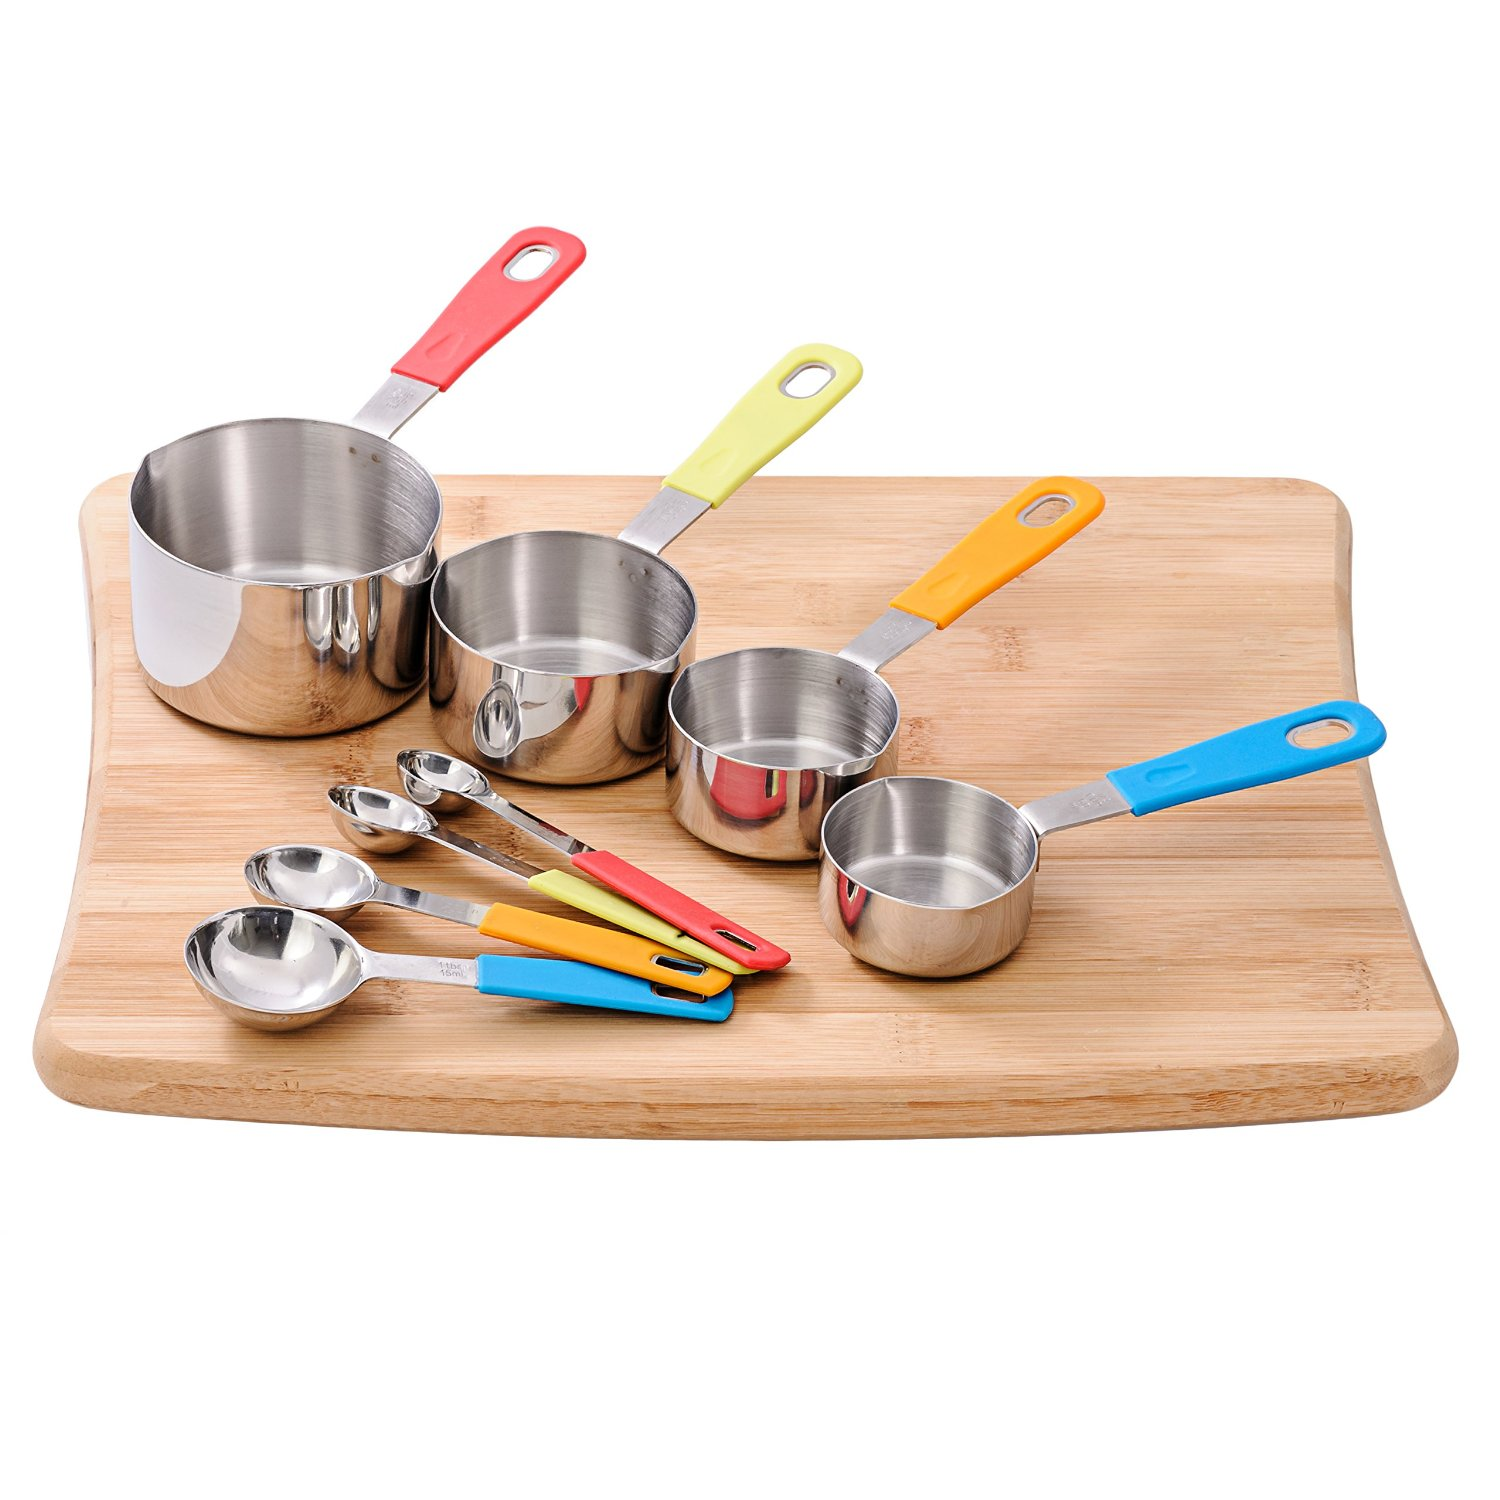 Measuring Cups And Spoon Wiki Kenmore 12 Piece Measuring